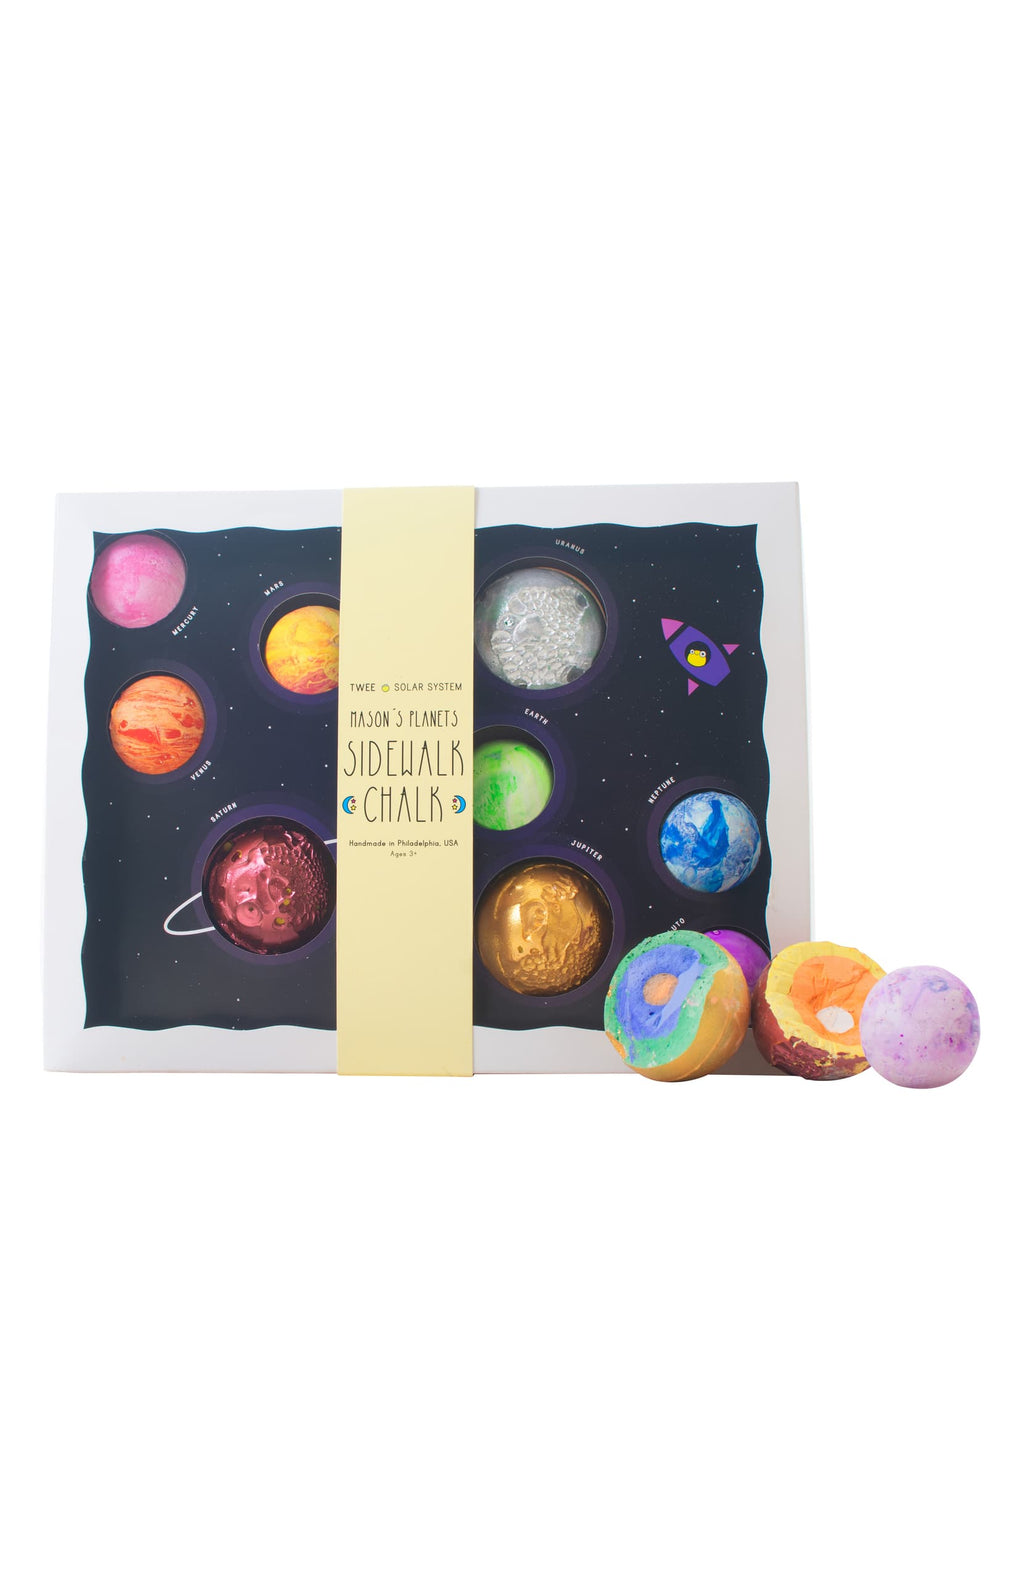 Mason's Planets 9-Piece Sidewalk Chalk Set